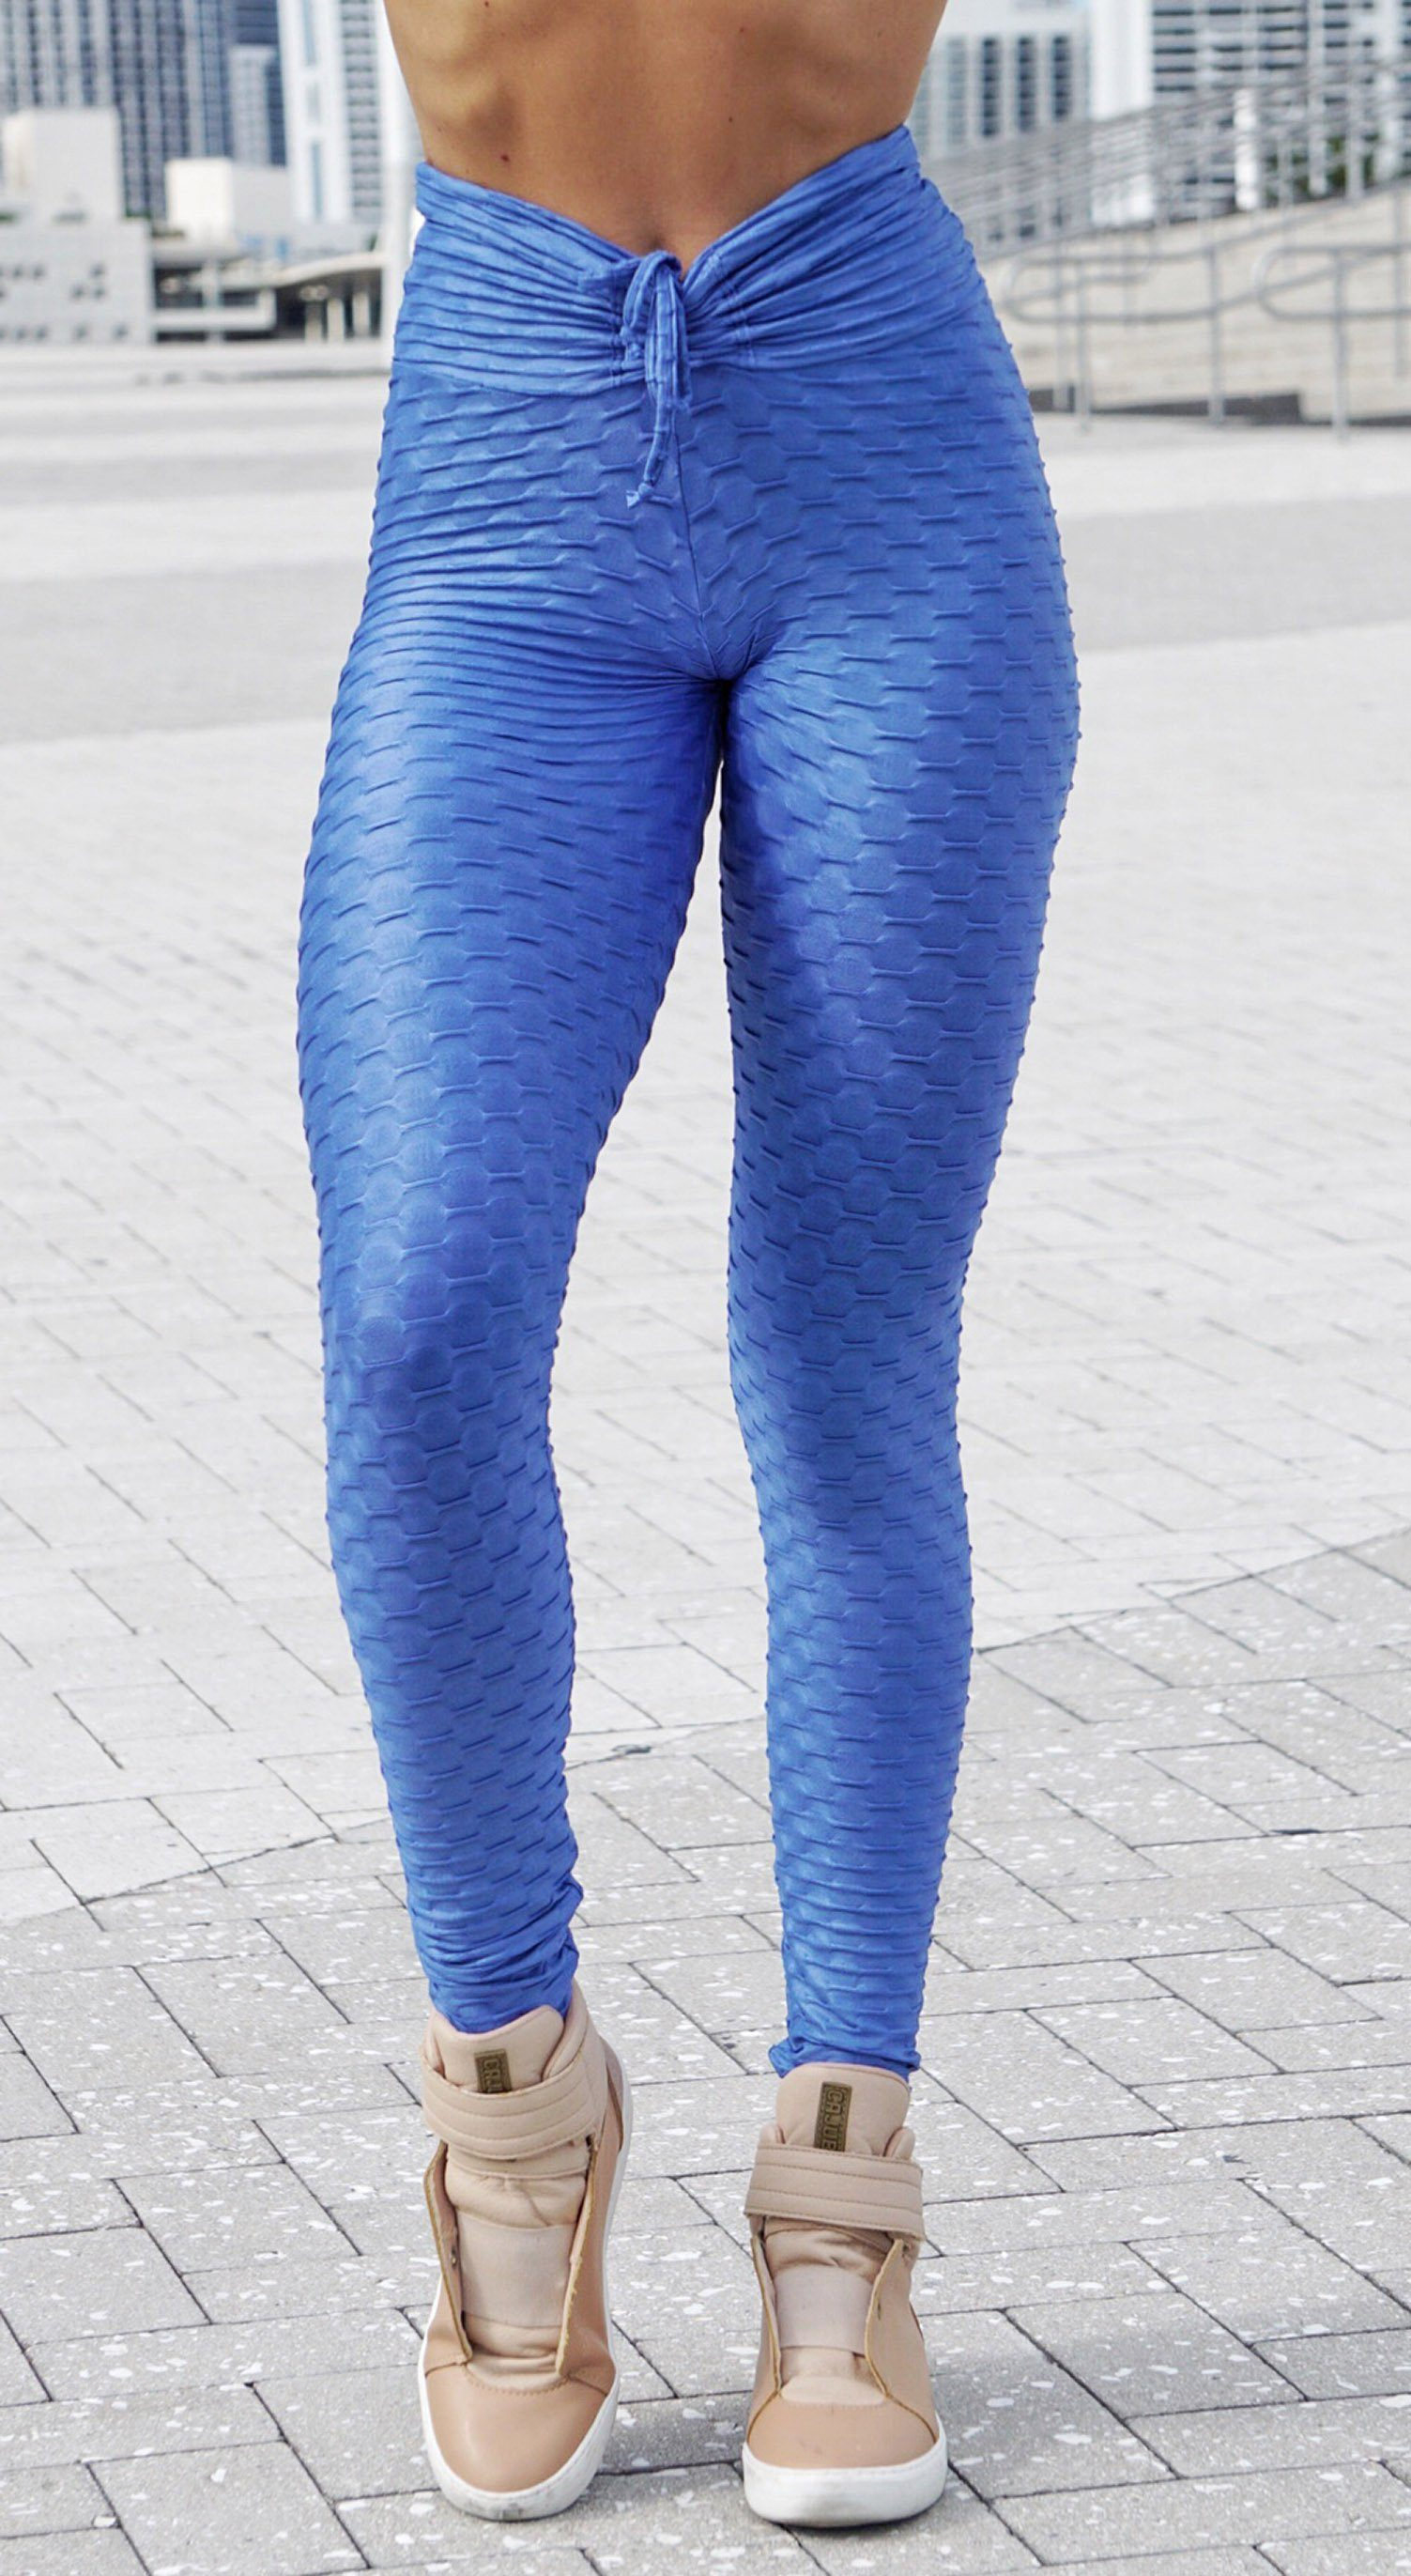 High Waist Zero Flaws Textured Shiny Royal Blue Leggings